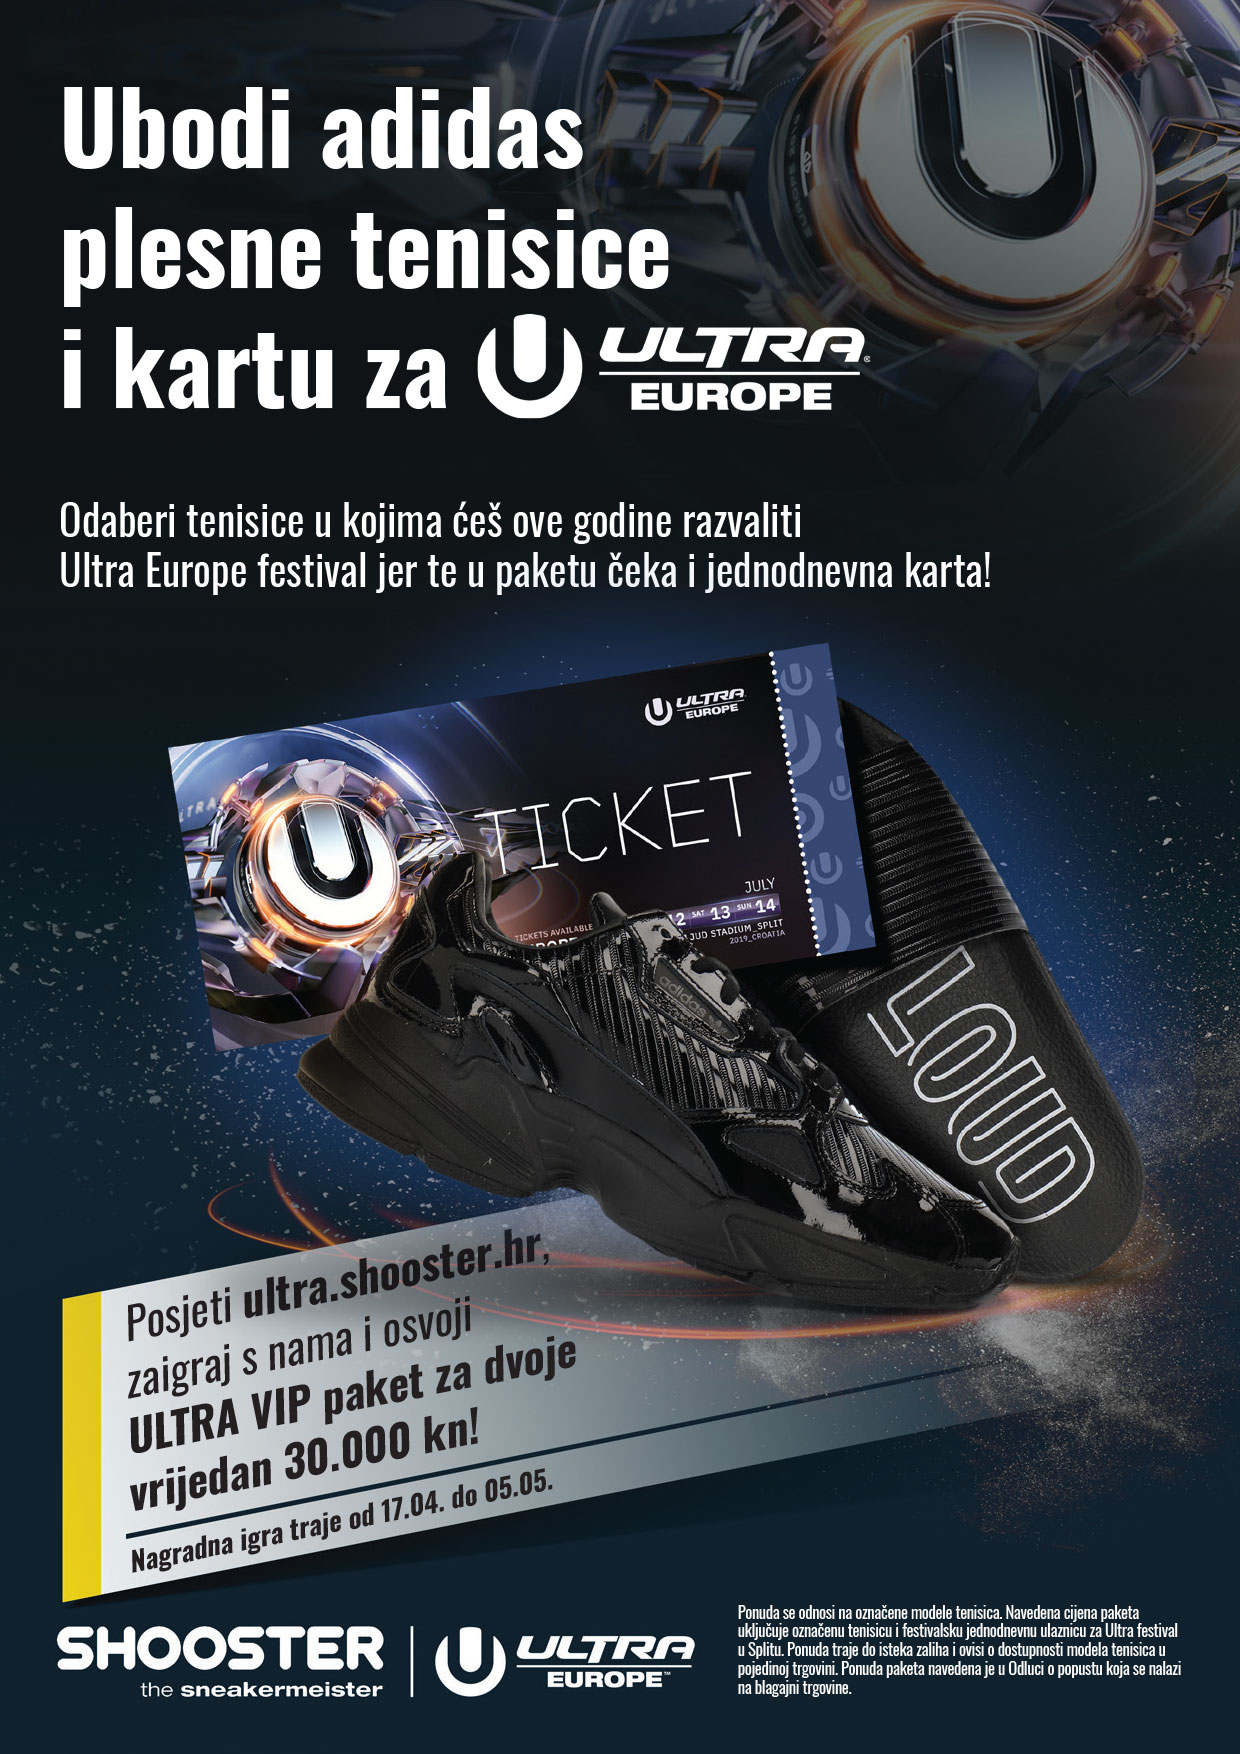 SHOOSTER_ULTRA_2019-retail_plakat-A4-v3_NI